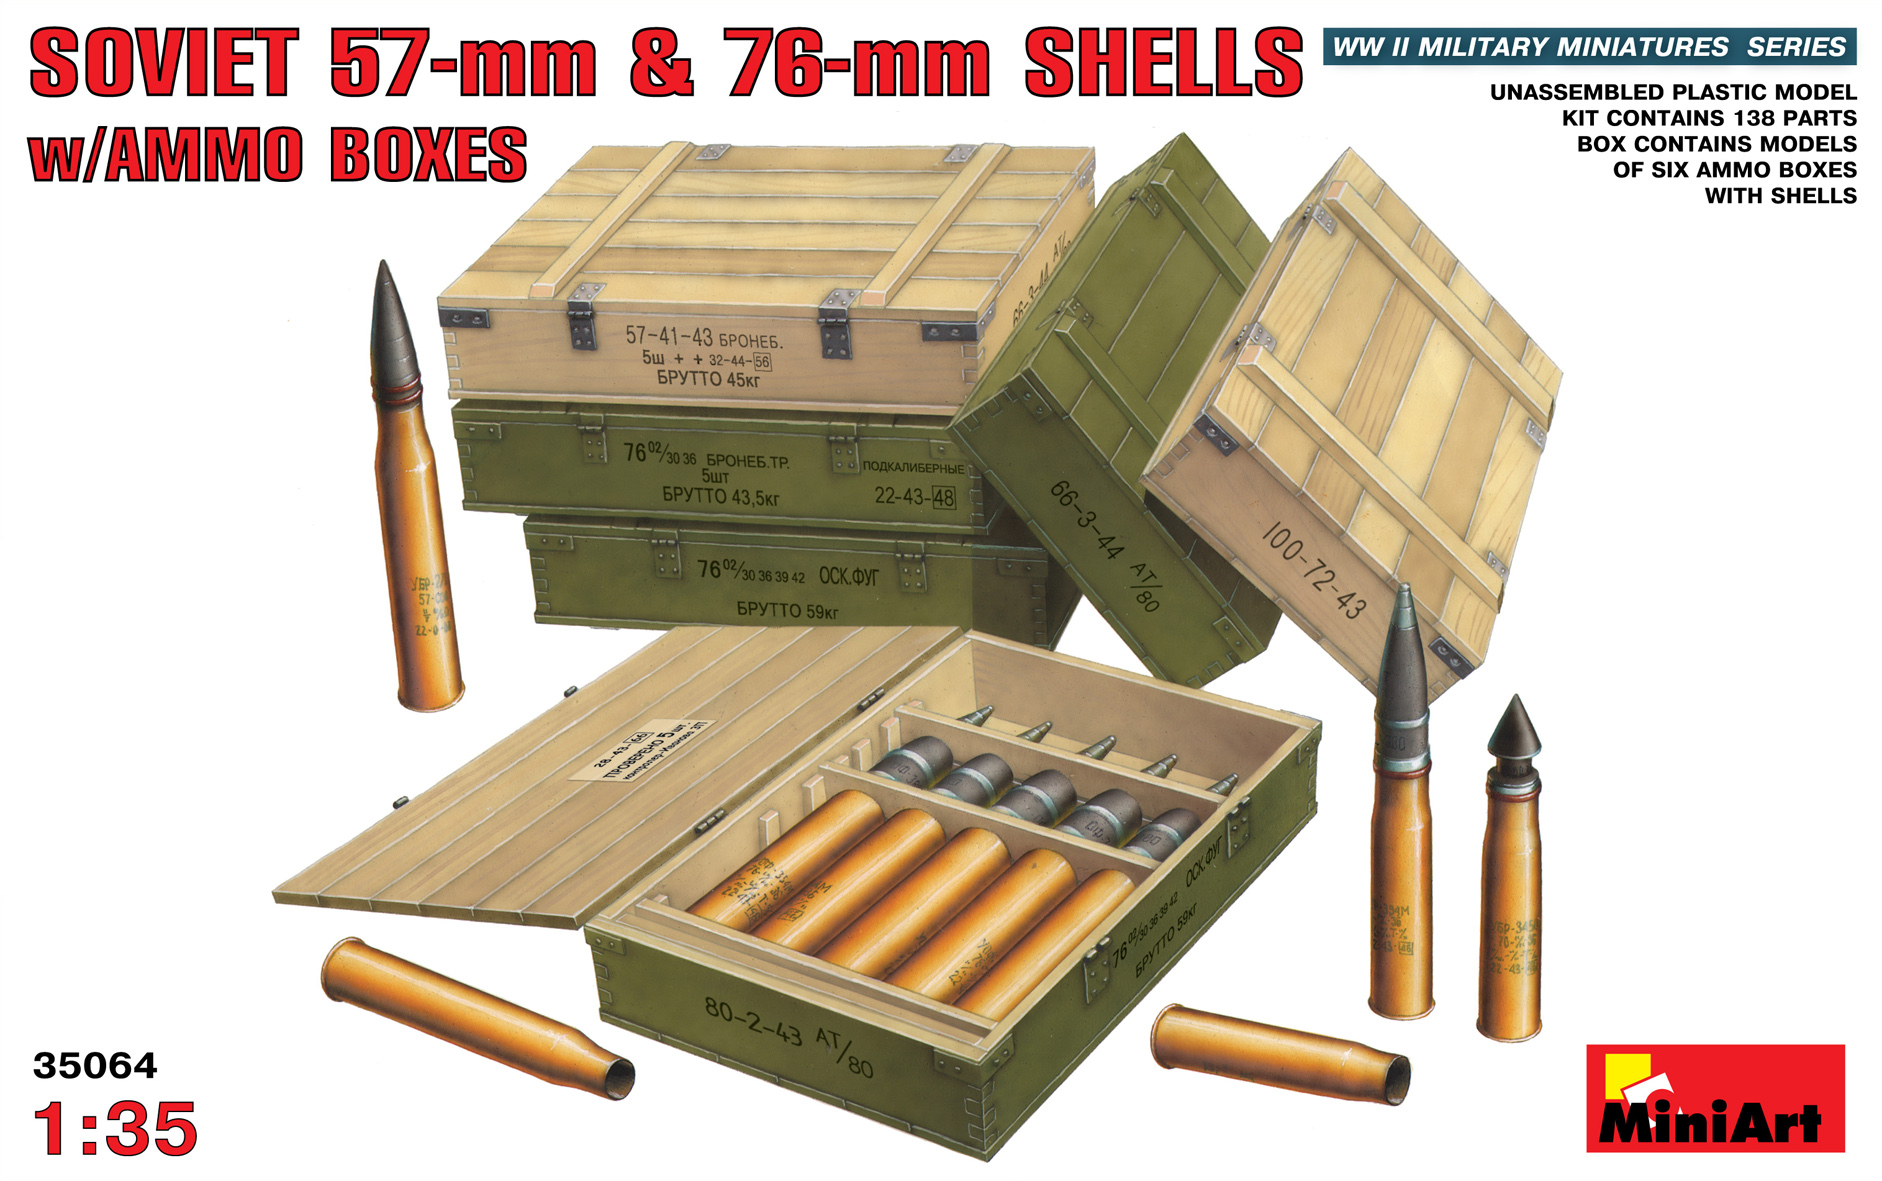 SOVIET 57-mm & 76-mm SHELLS w/AMMO BOXES